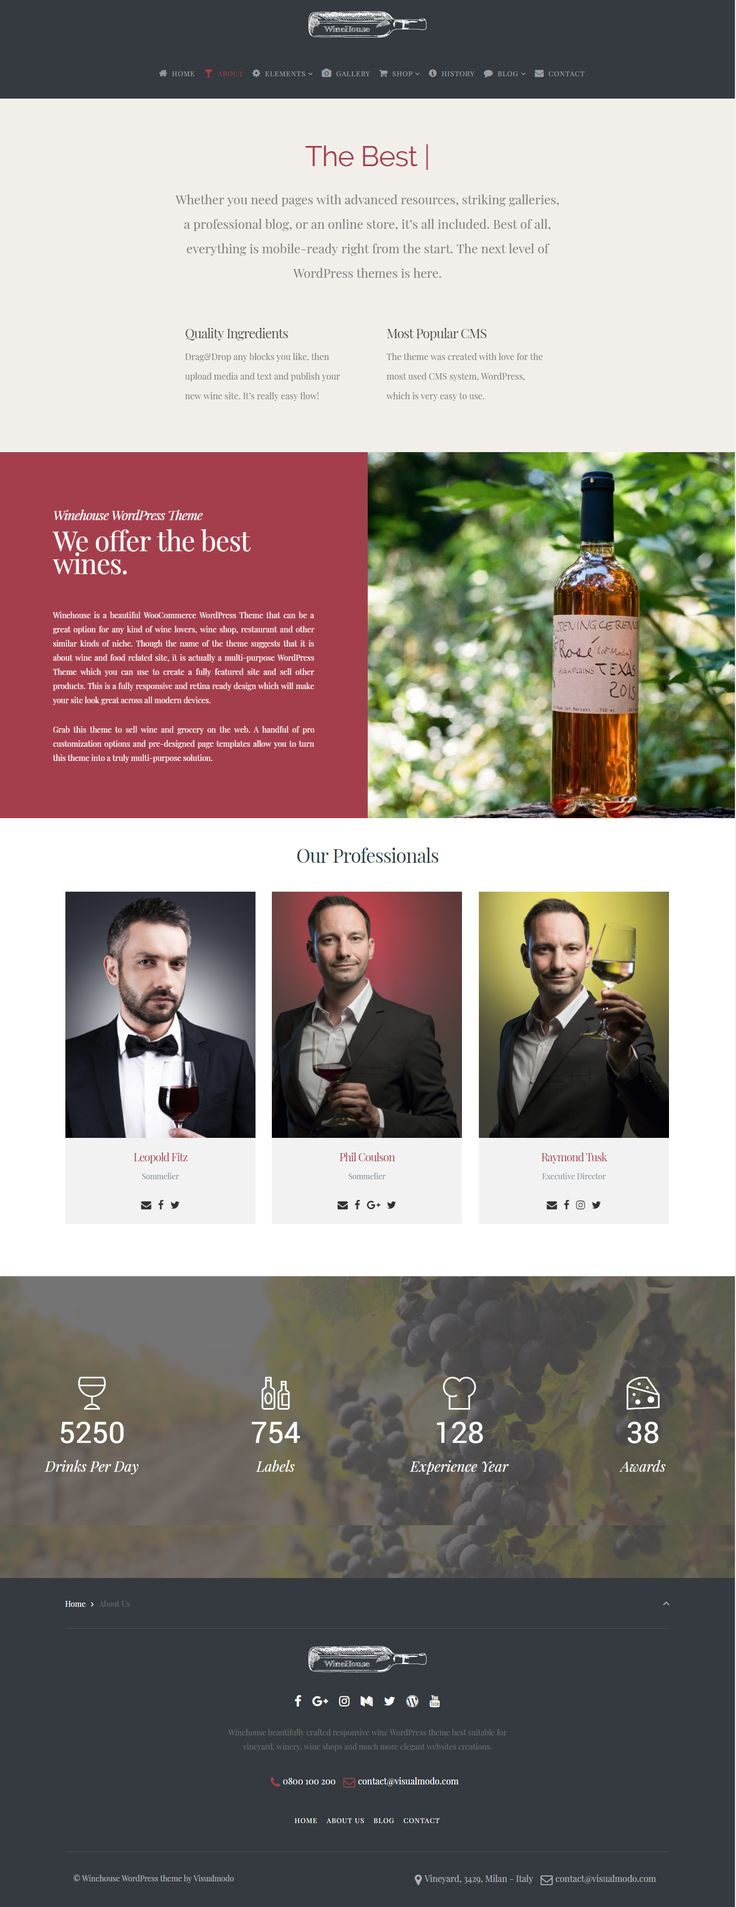 Winehouse WordPress Theme https://visualmodo.com/theme/winehouse-wordpress-theme/ Specially designed for all the wineries, wine shops & bars, pubs, online wine sales, breweries, blogs, vineyards as well as independent dining, restaurants and star hotel's premium bars and cafes. Winery theme is a delightful wine responsive multi-purpose template 🍷🍇 #WordPress #Theme #Wine #Responsive #SiteBuilder #Plugins #Templates #winery #vineyard